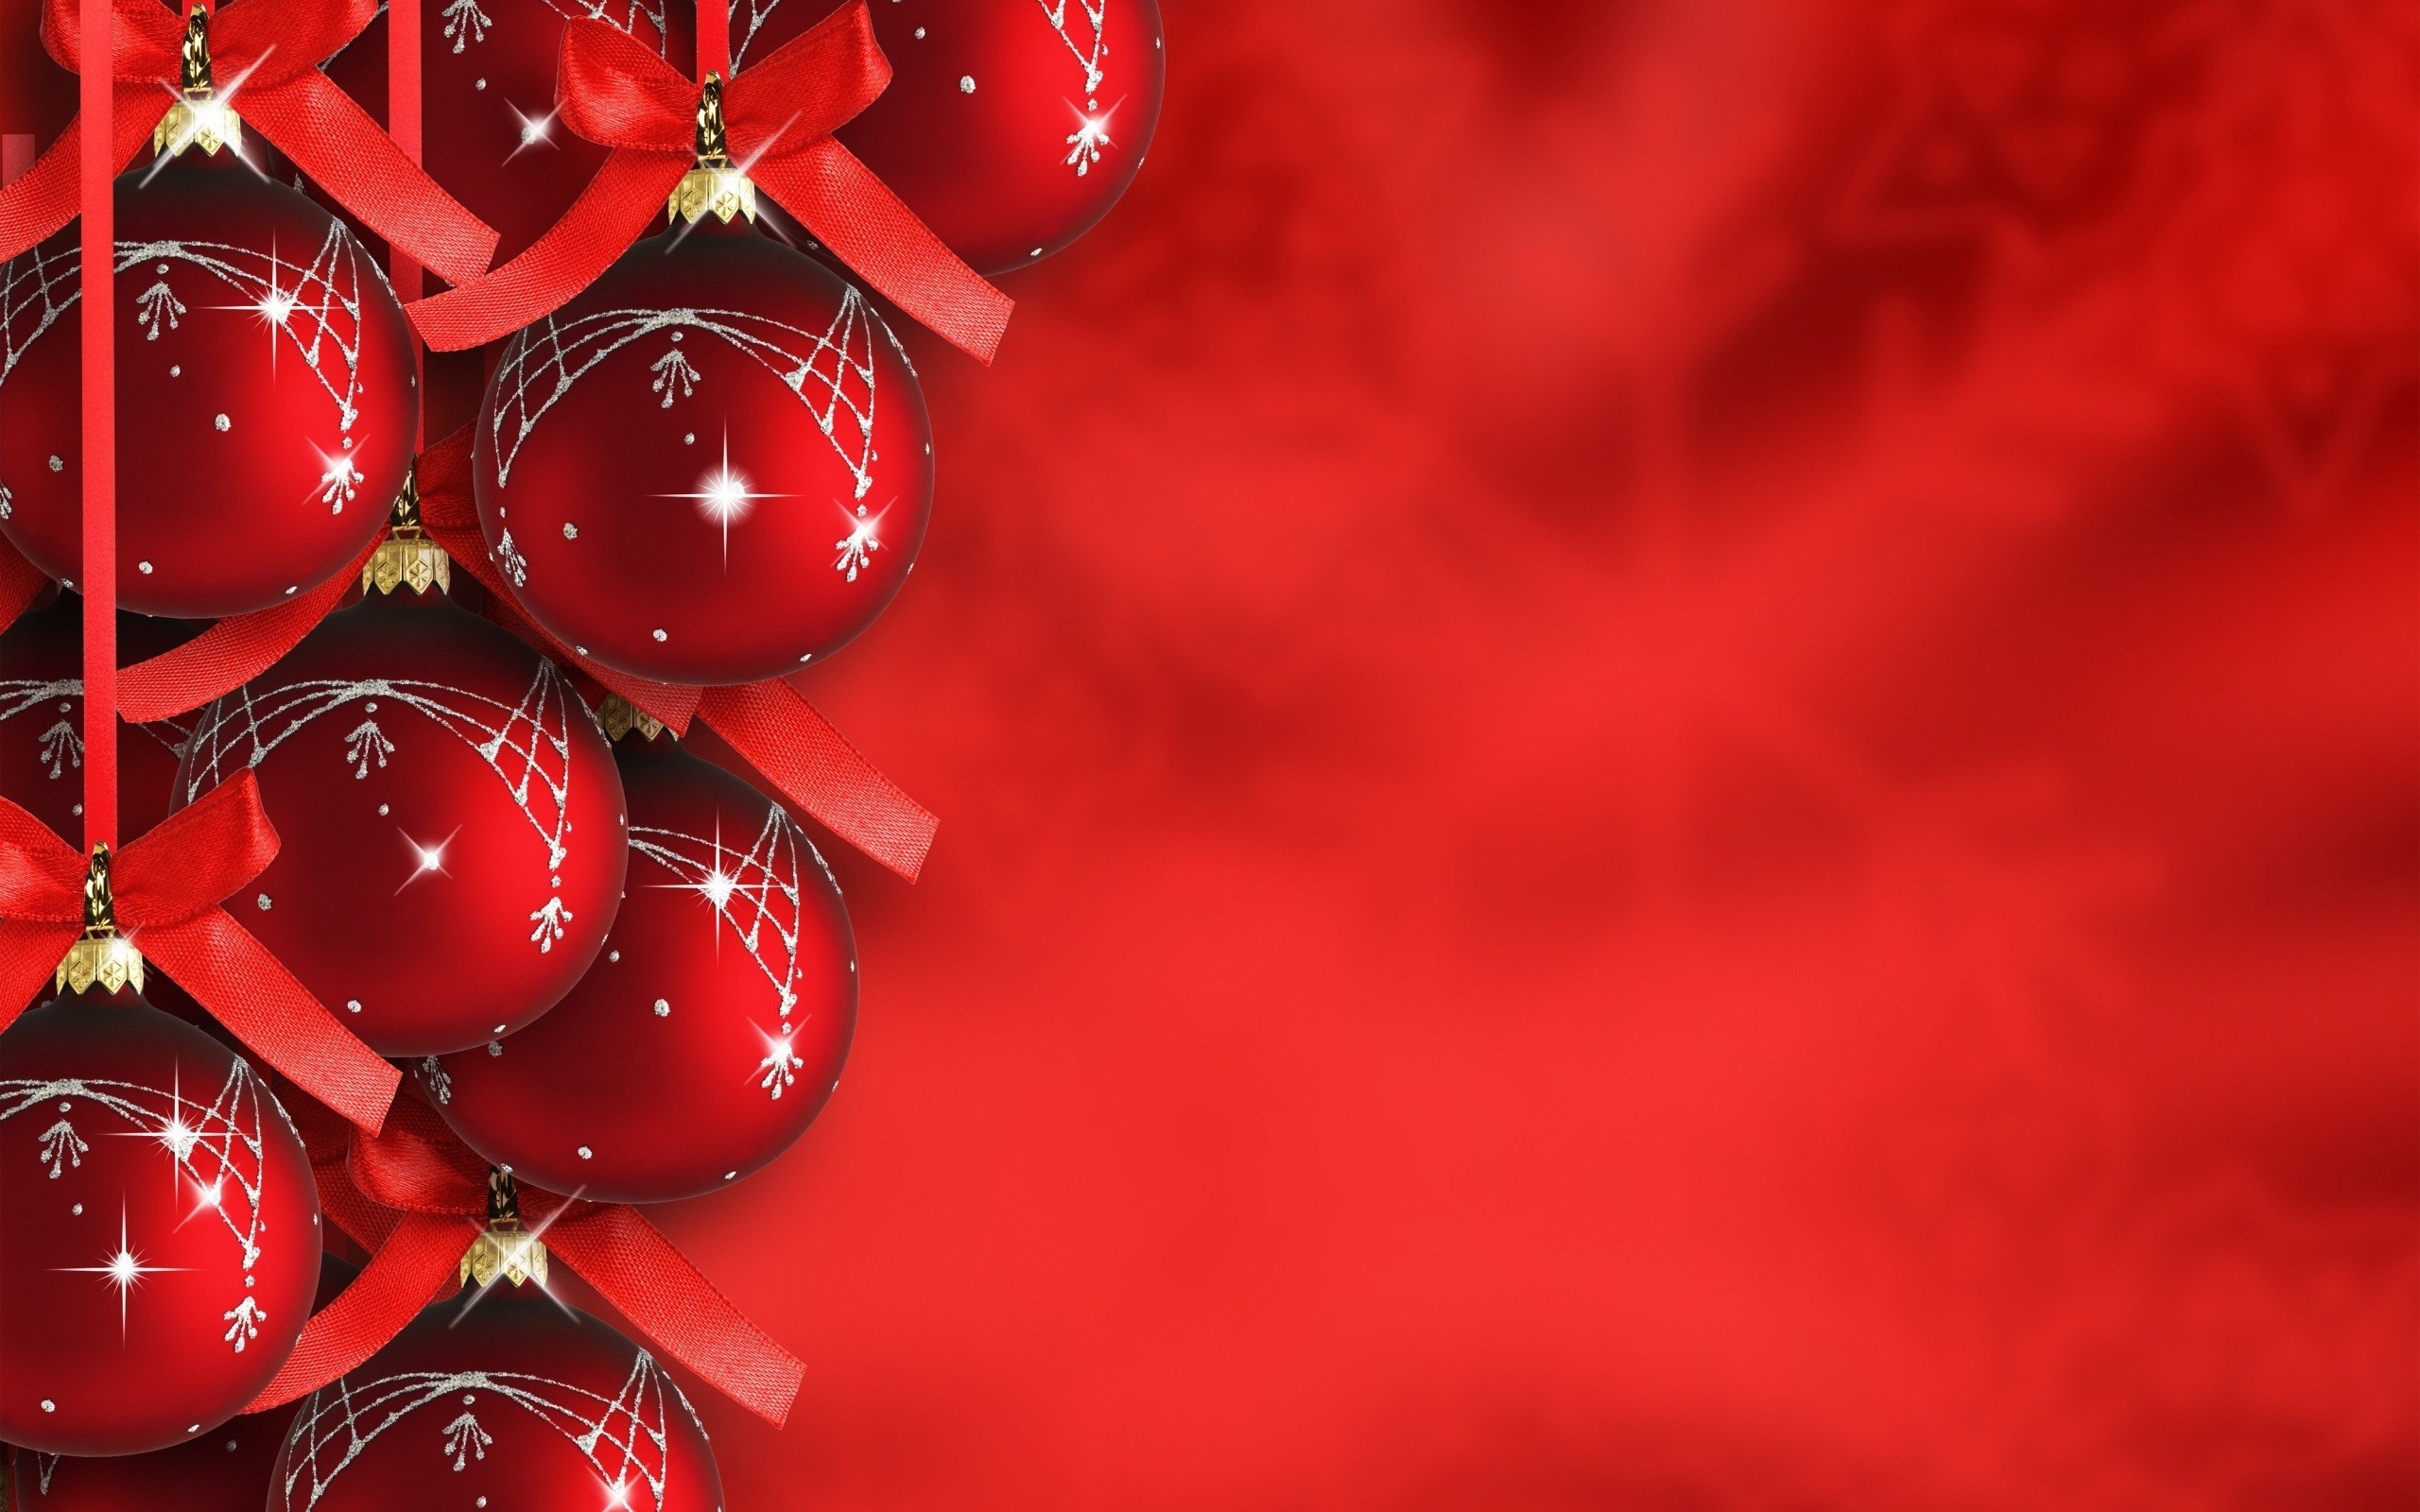 2560x1600  Christmas Background Wallpaper